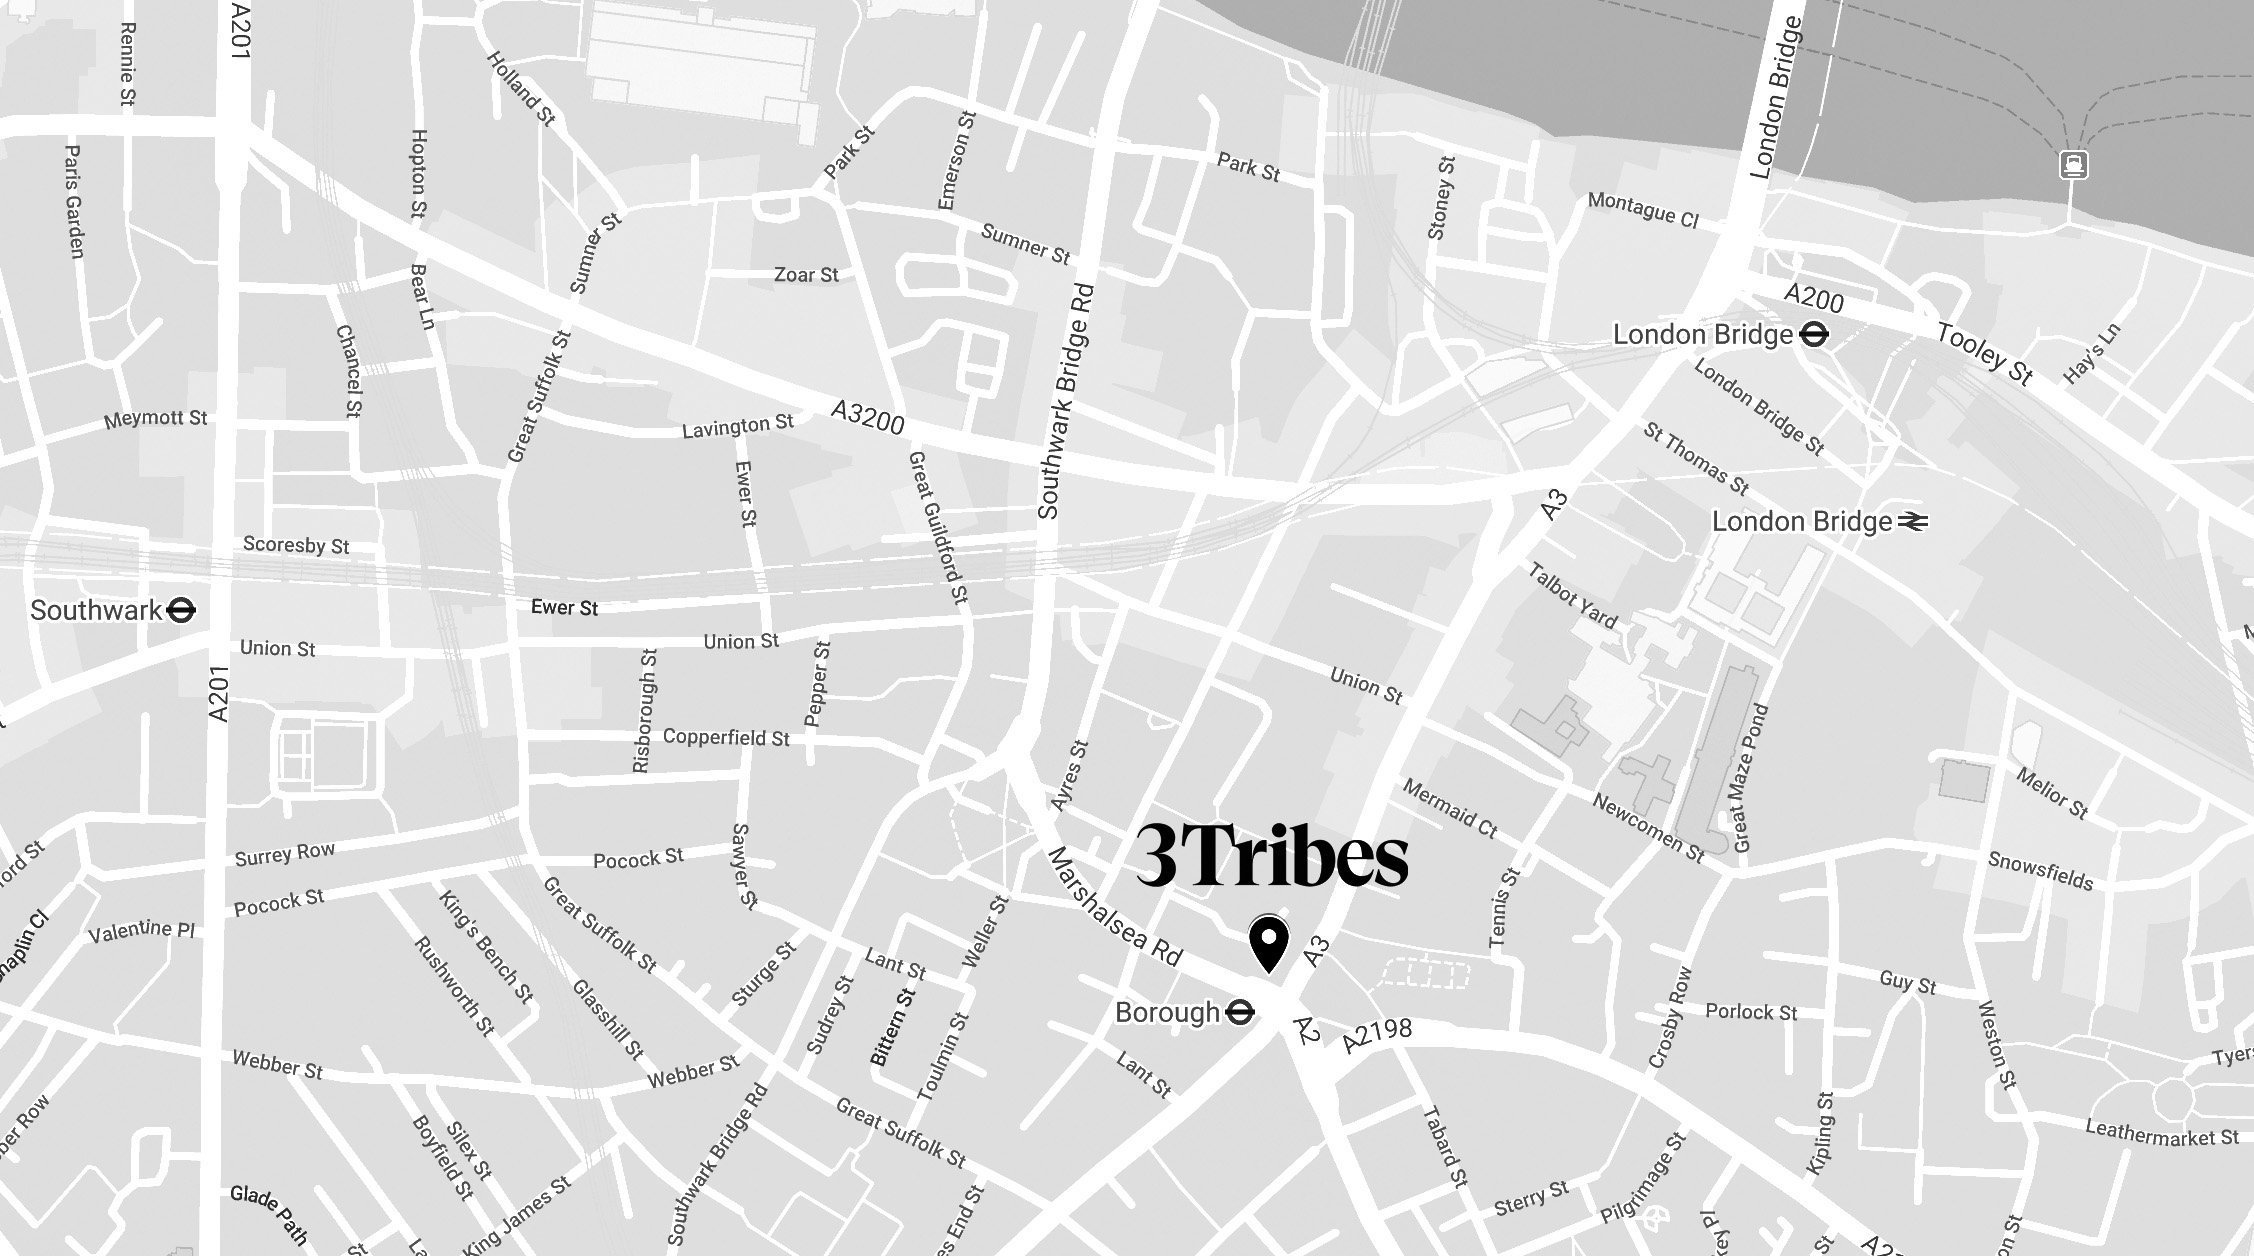 3Tribes Borough studio